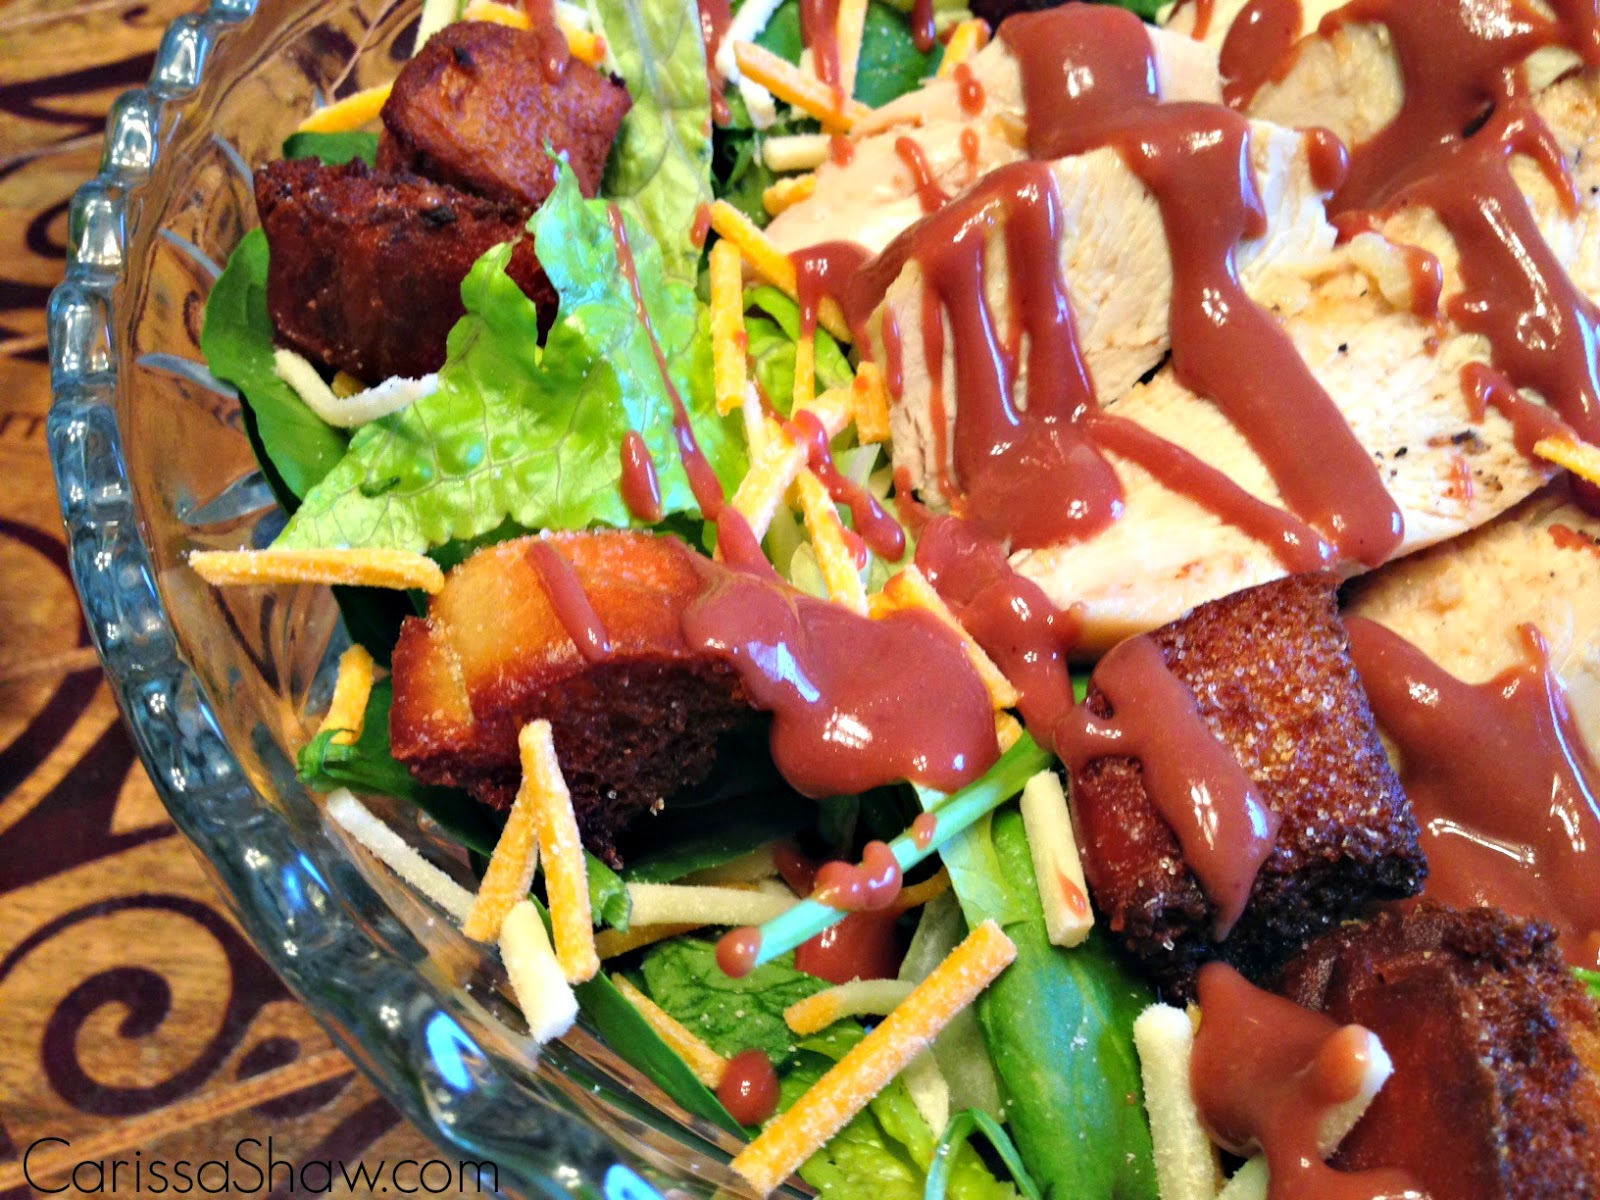 ... salad dressing, shredded cheese, turkey, and salad greens for a